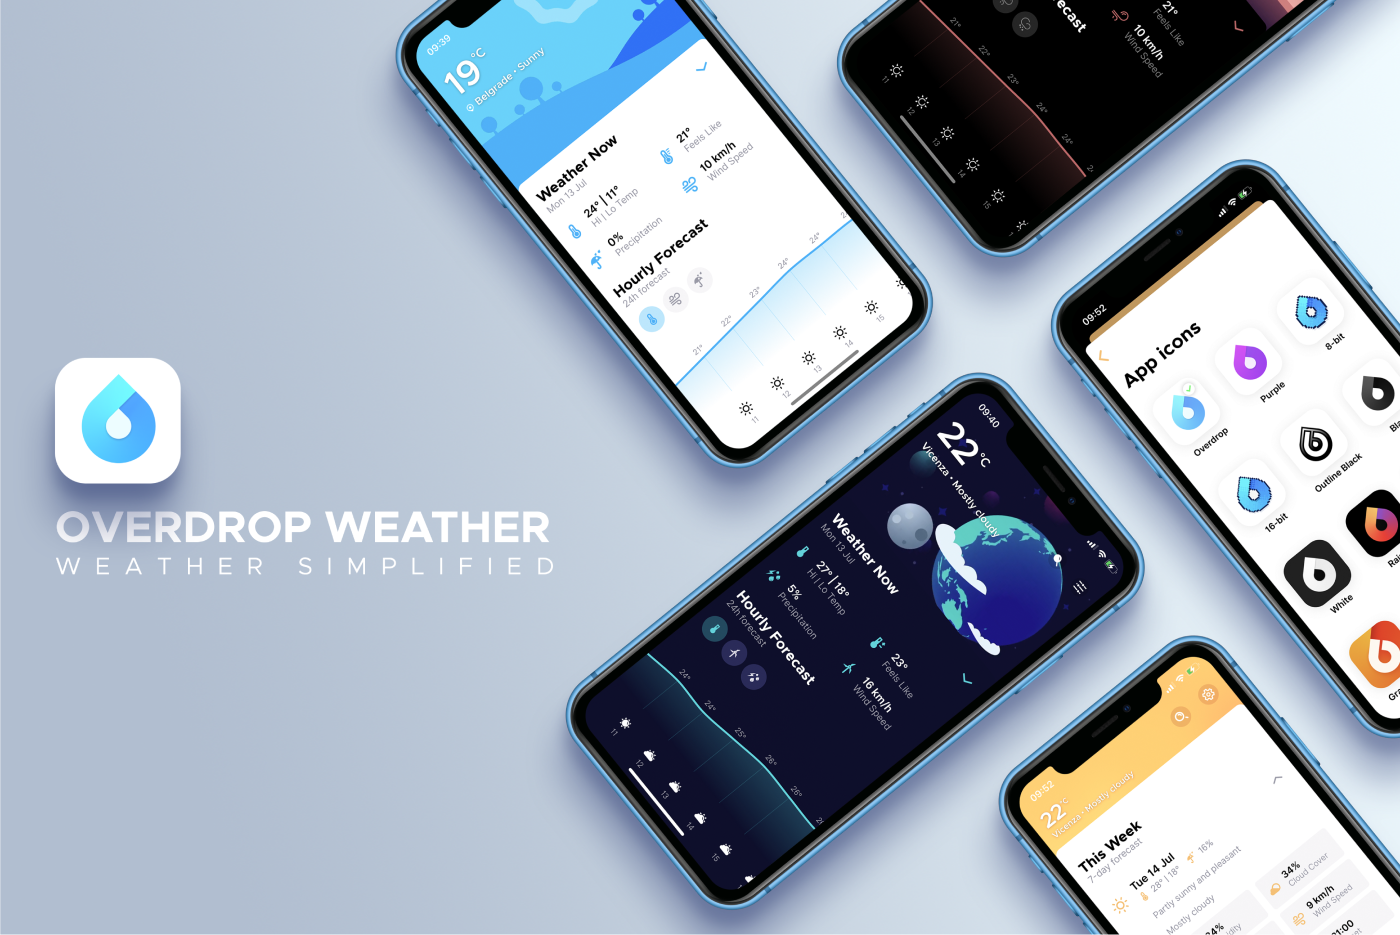 Top 10 Most Accurate Weather Apps 2021. 7